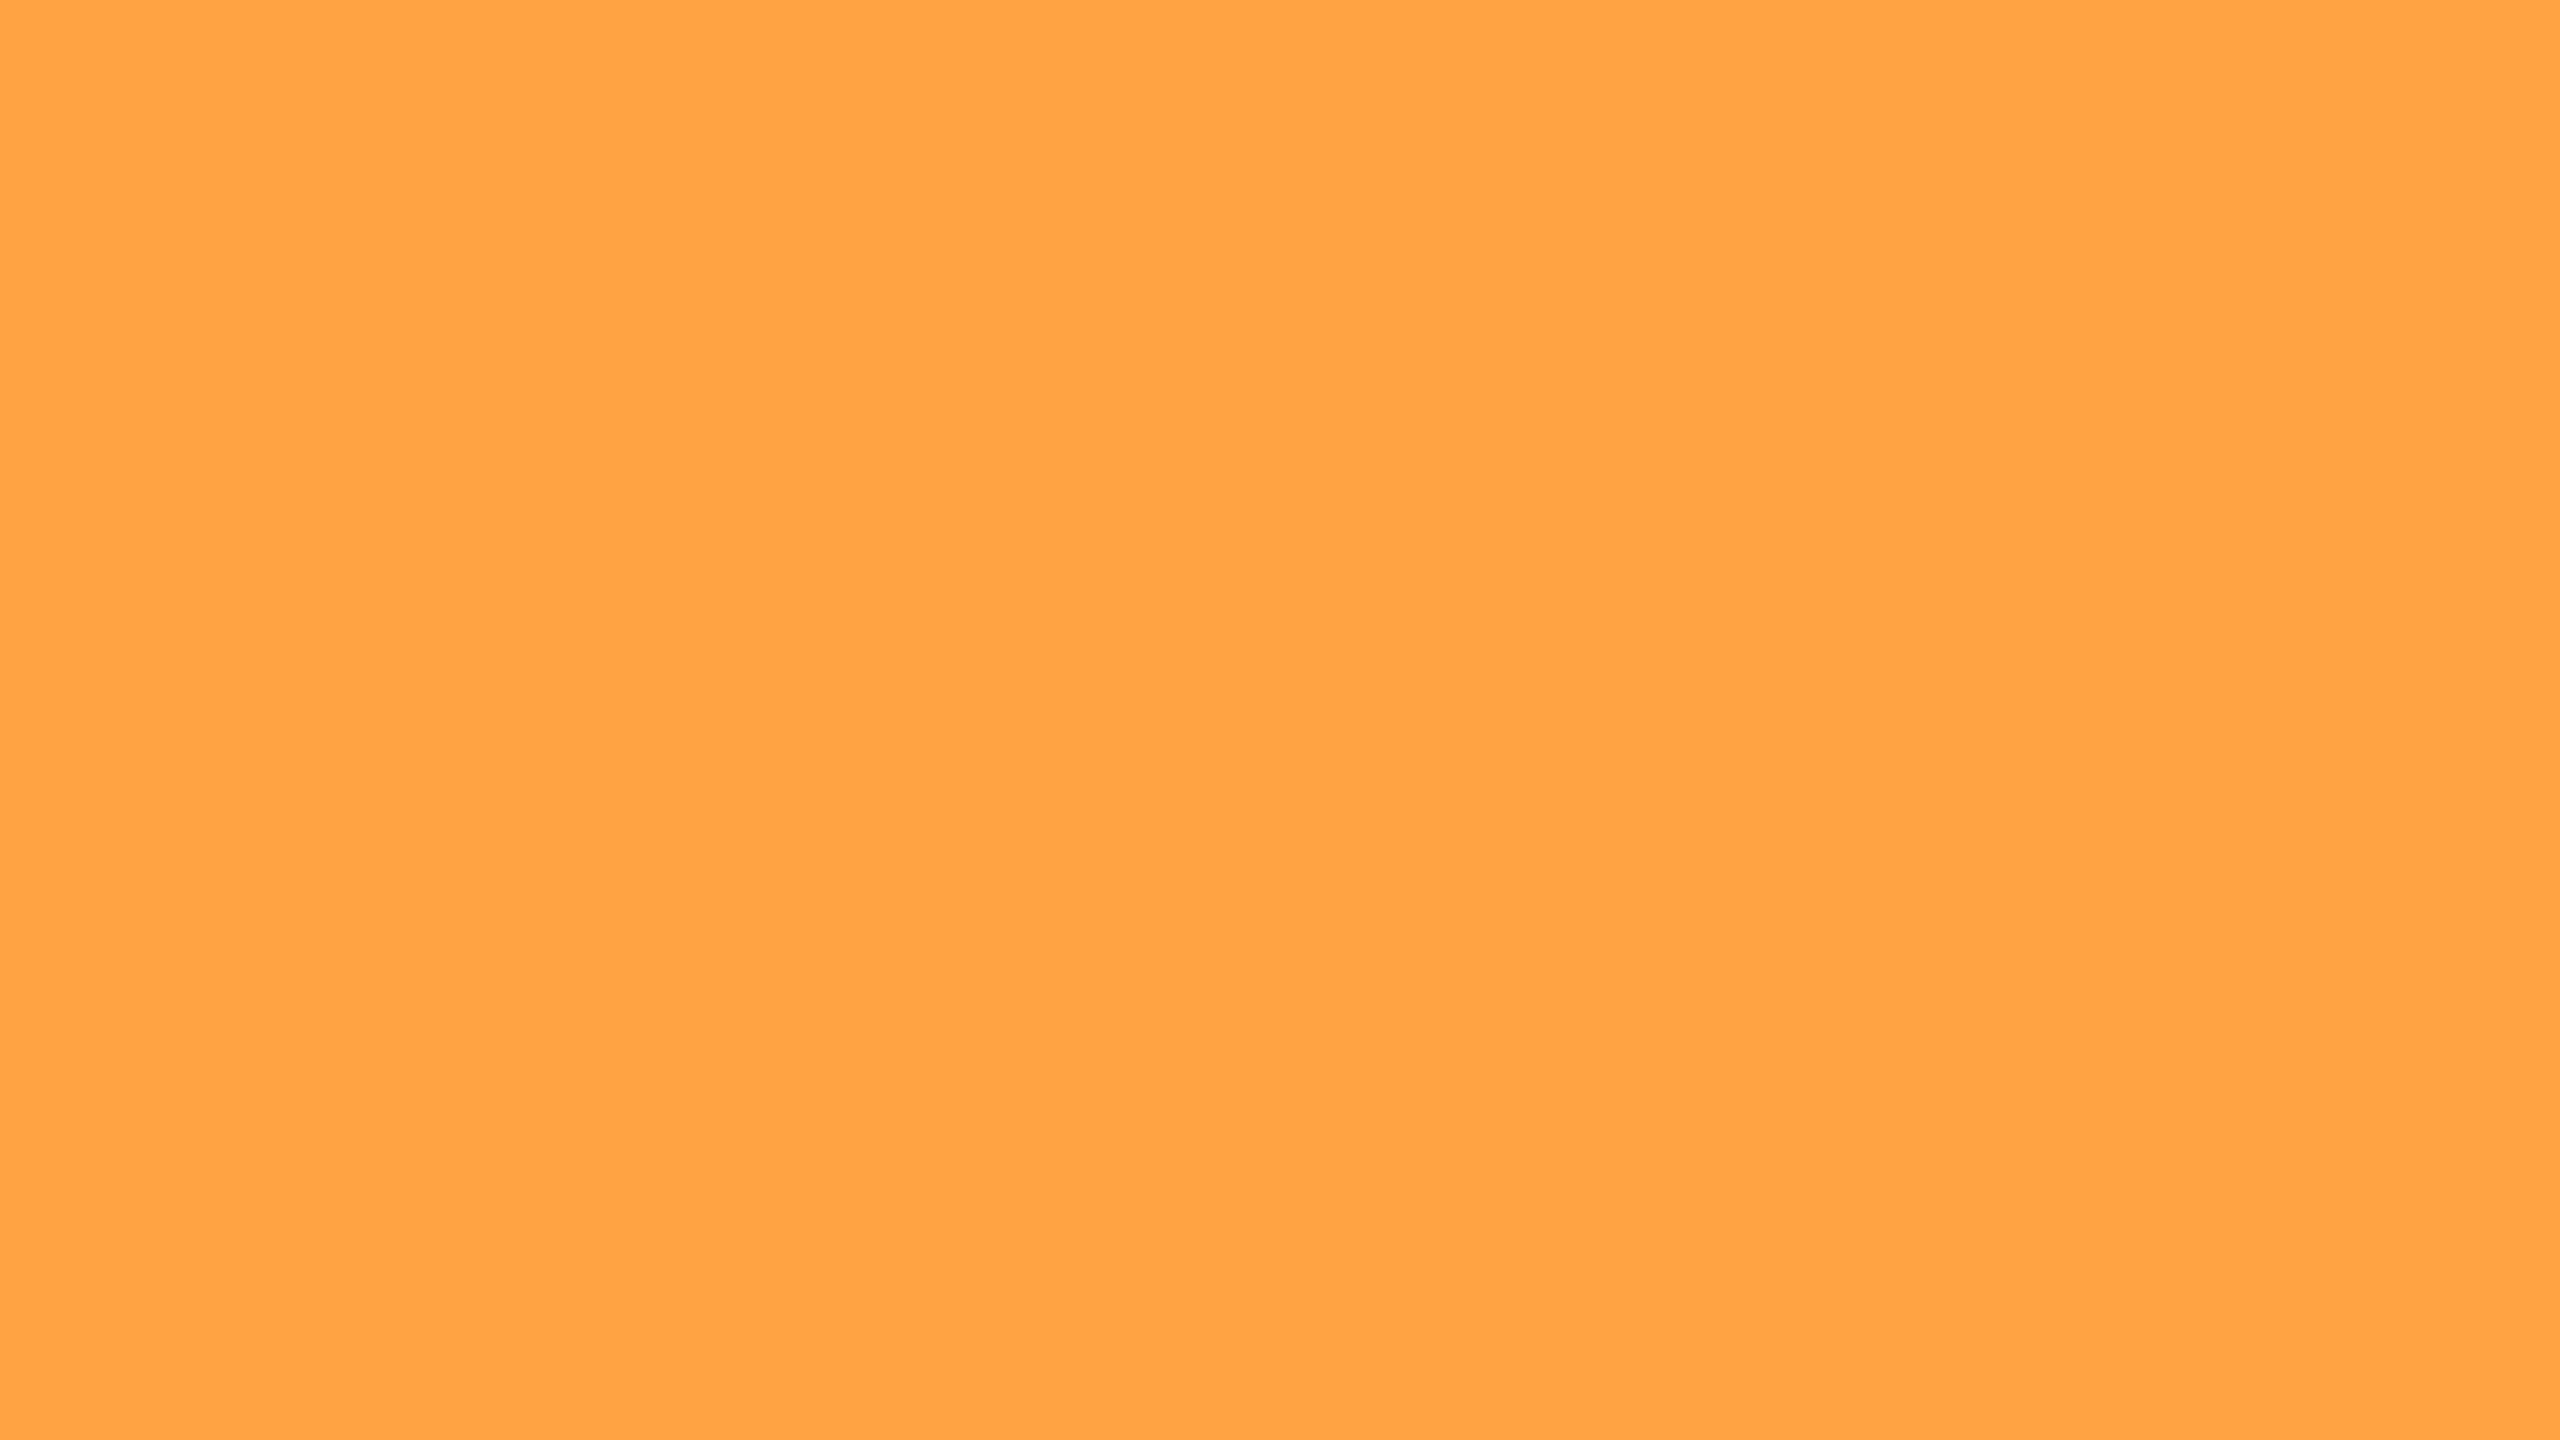 Bright Orange Wallpaper